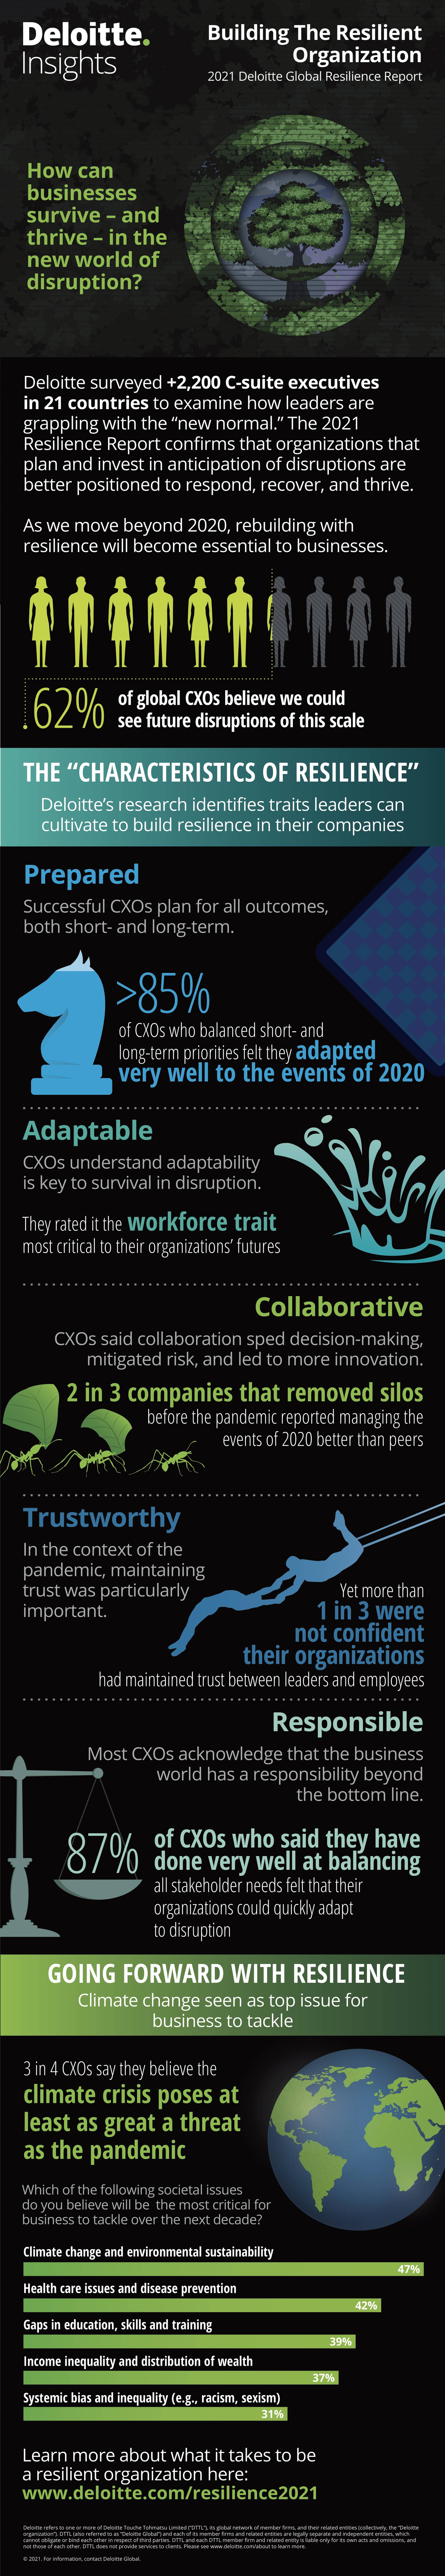 Rebuilding with resilience—5 key traits of companies best prepared for future disruption